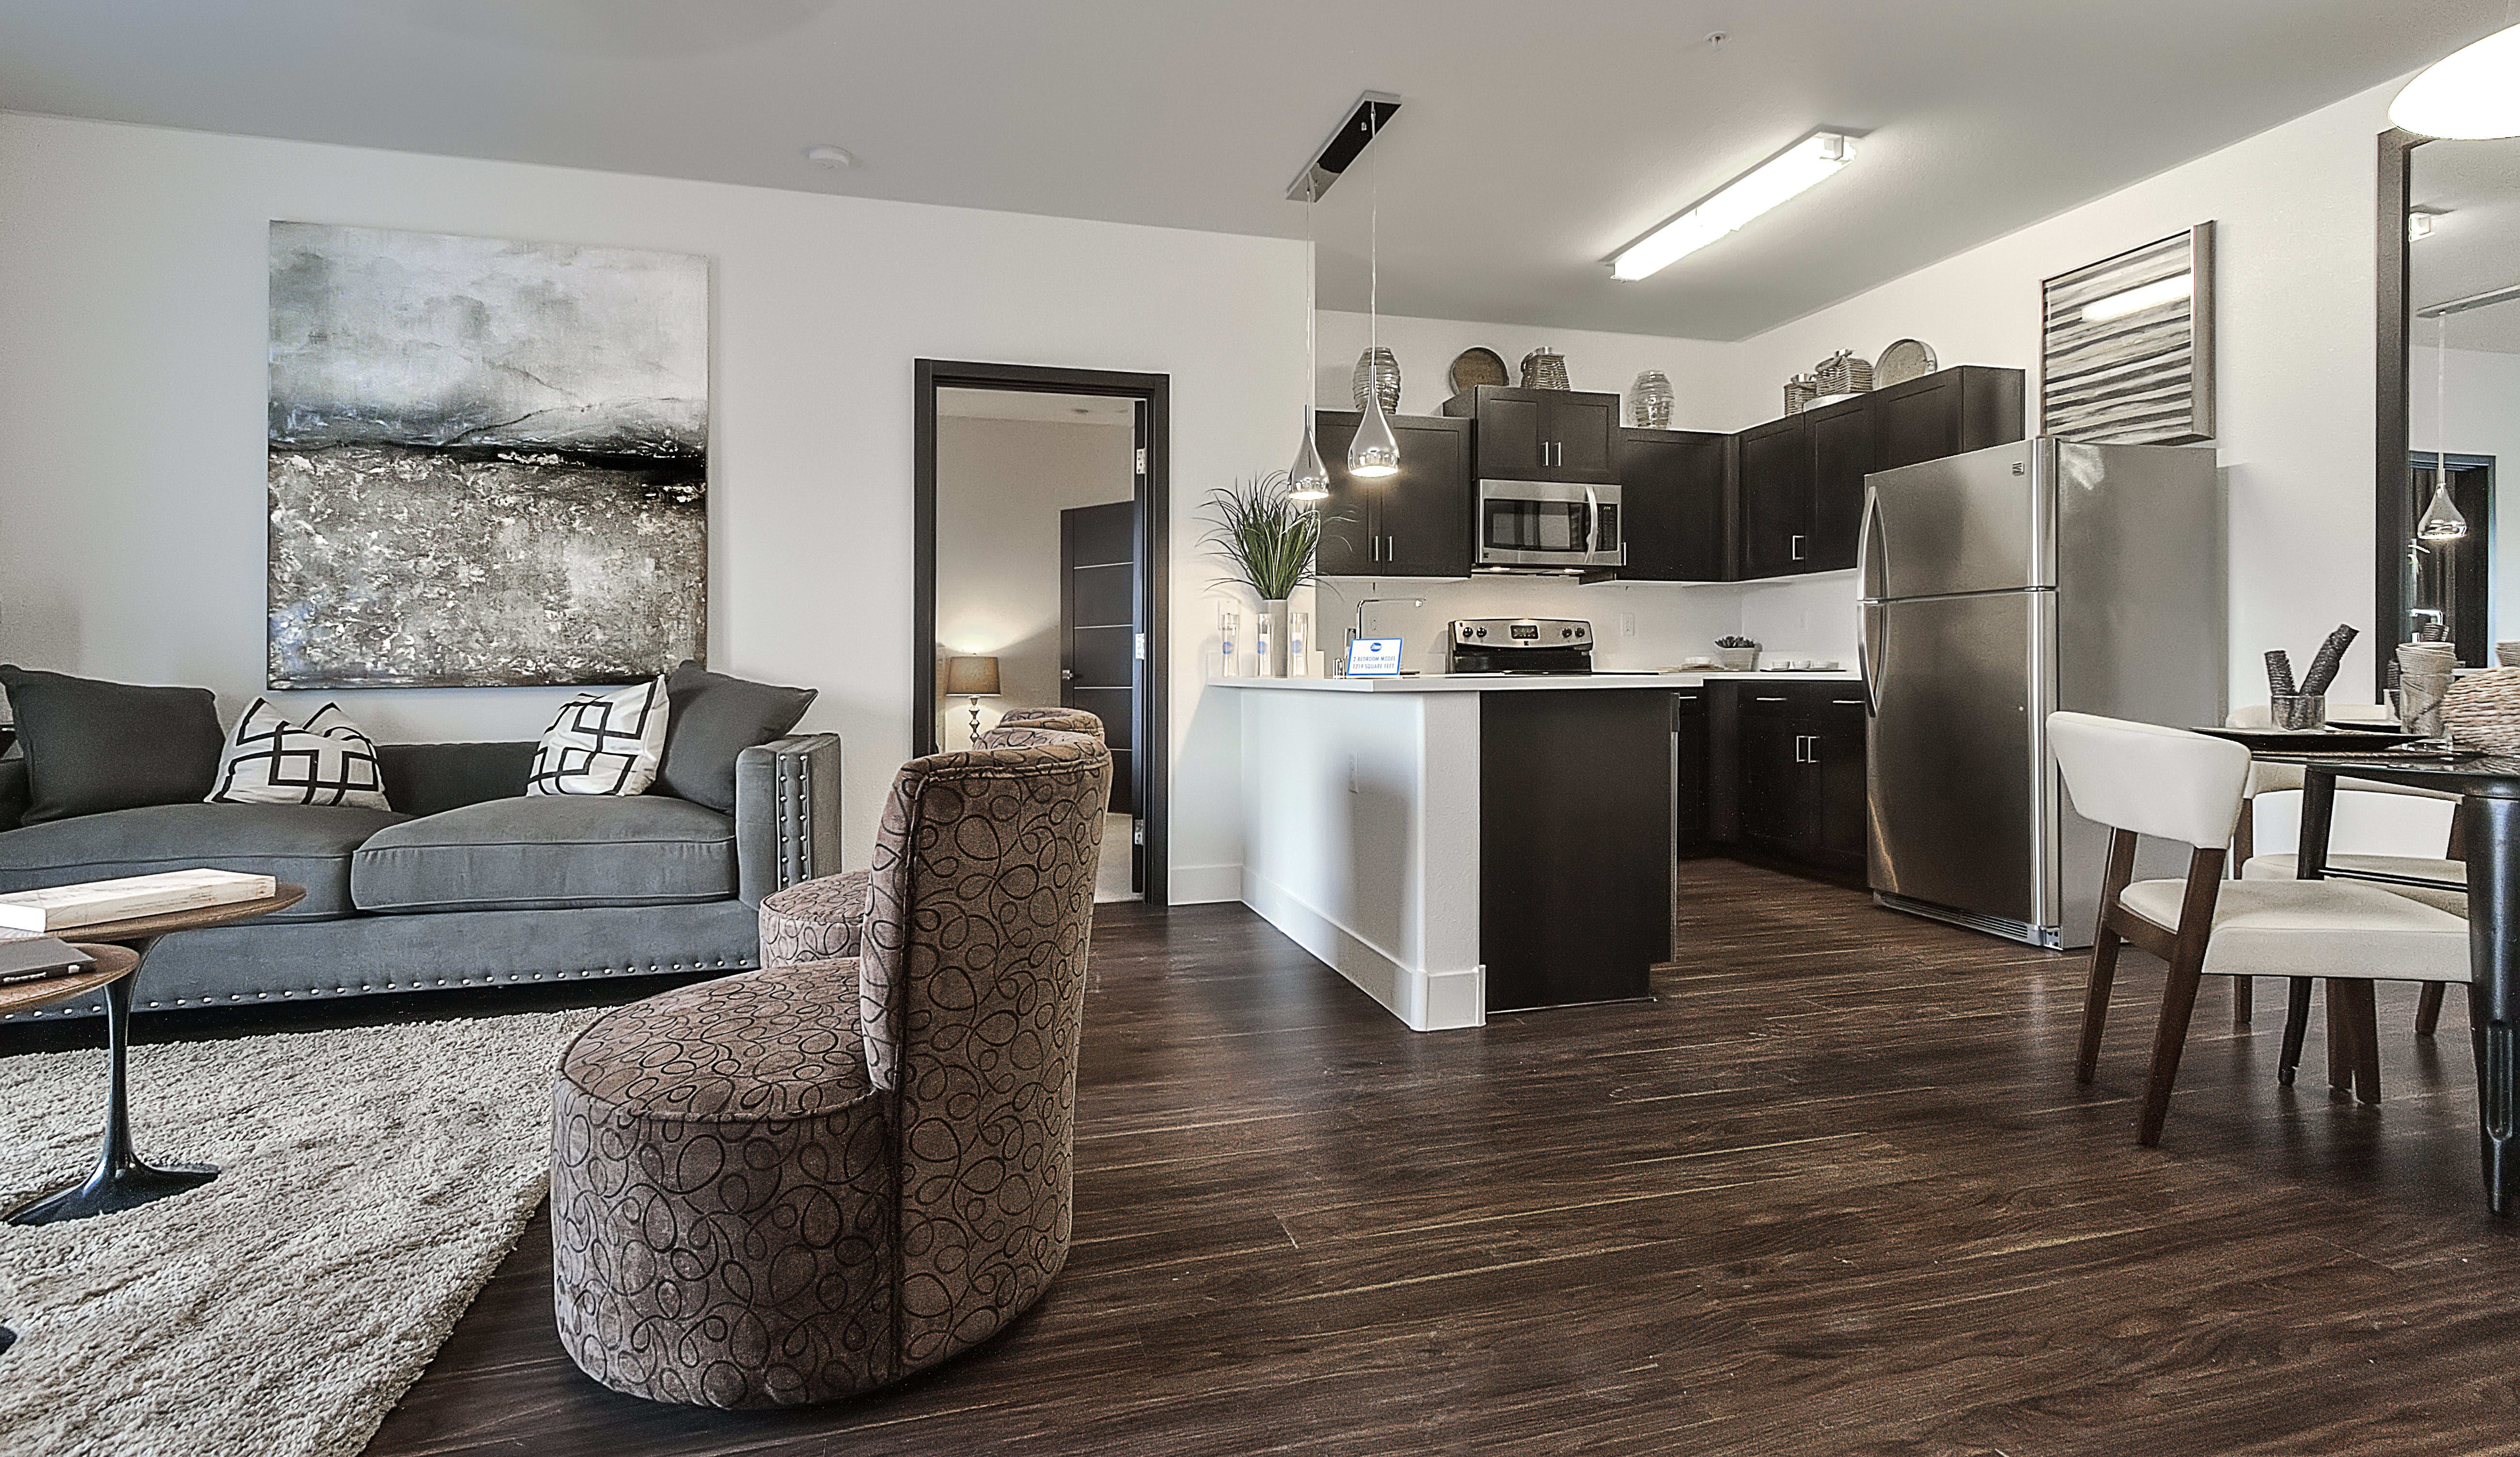 Green Valley Henderson Nv Apartments Dream Apartments